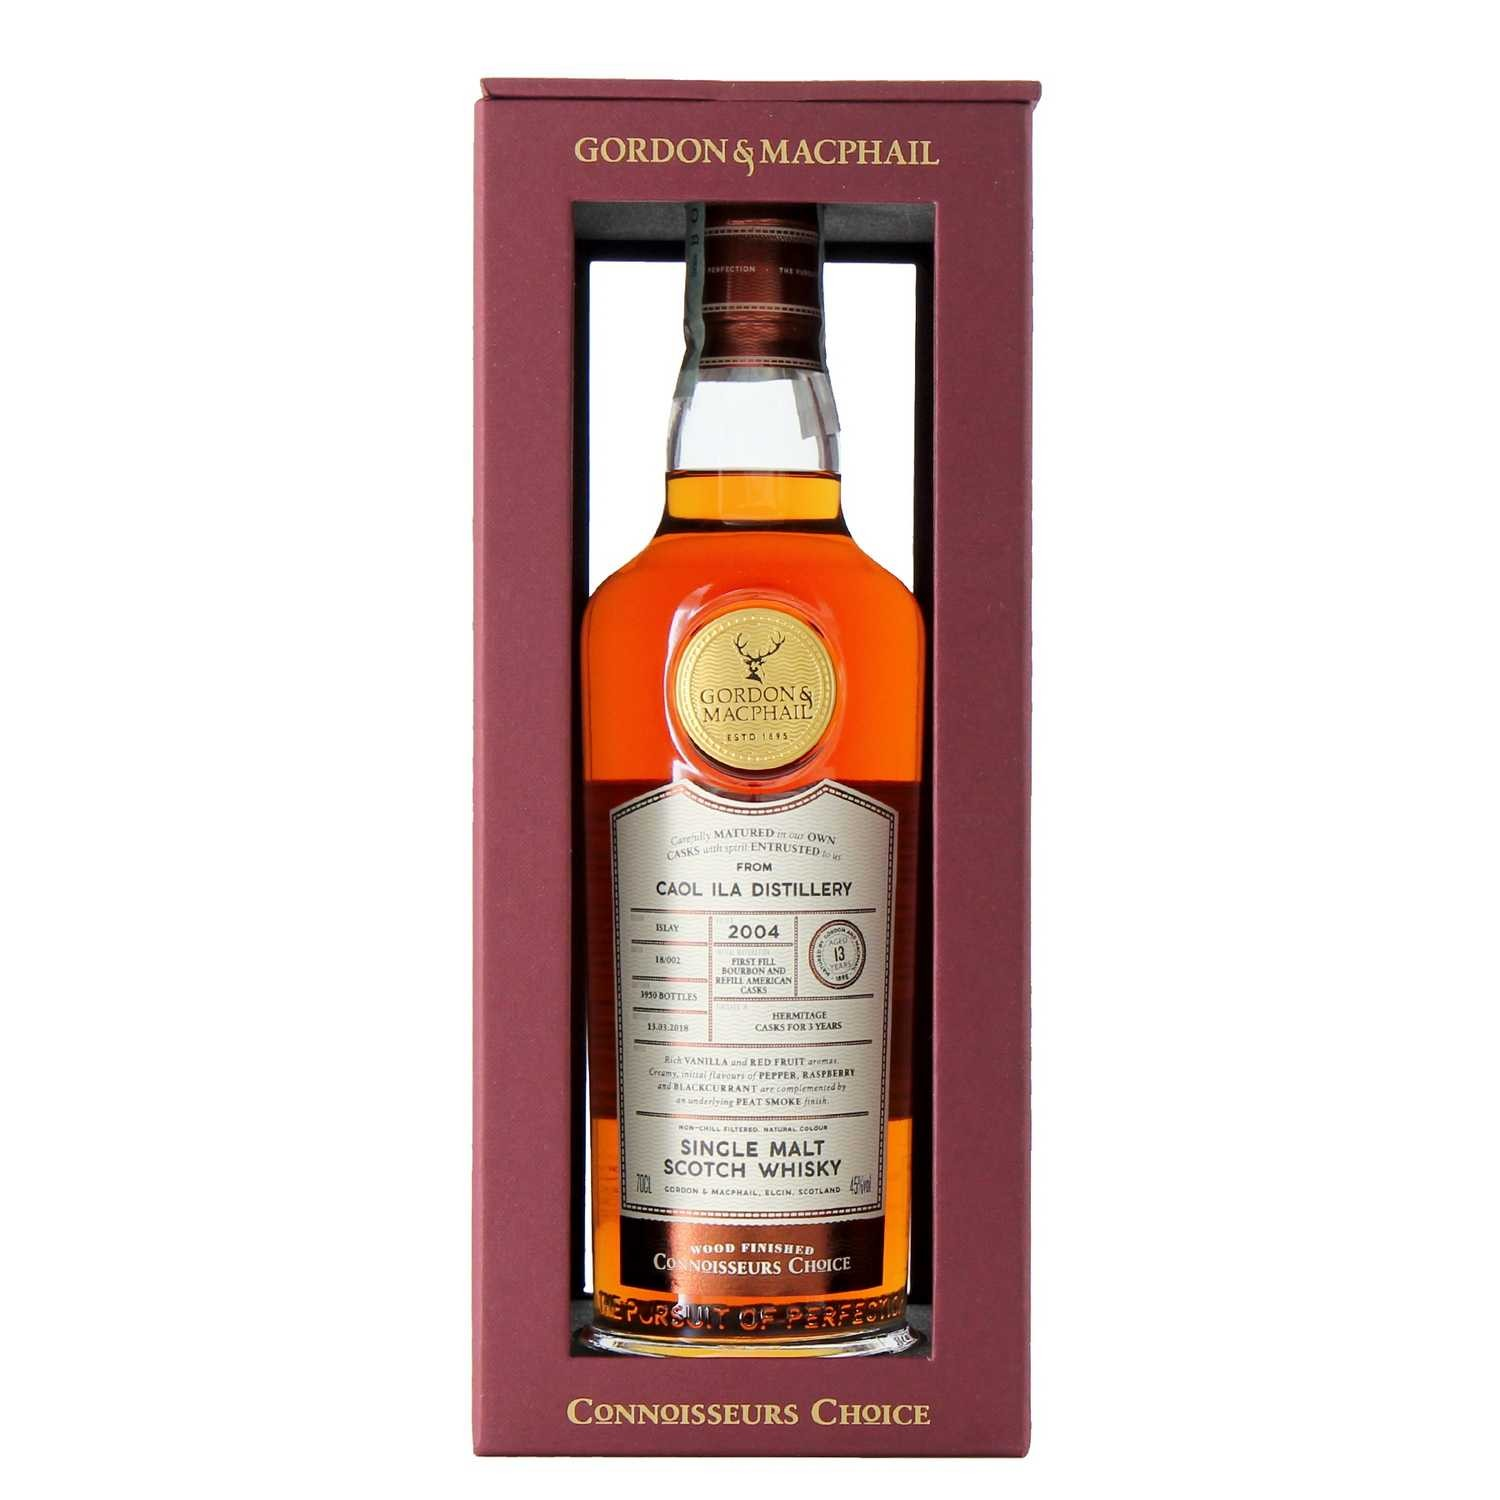 whisky single malt caol ila 2004 70 cl gordon & macphail  - enoteca pirovano